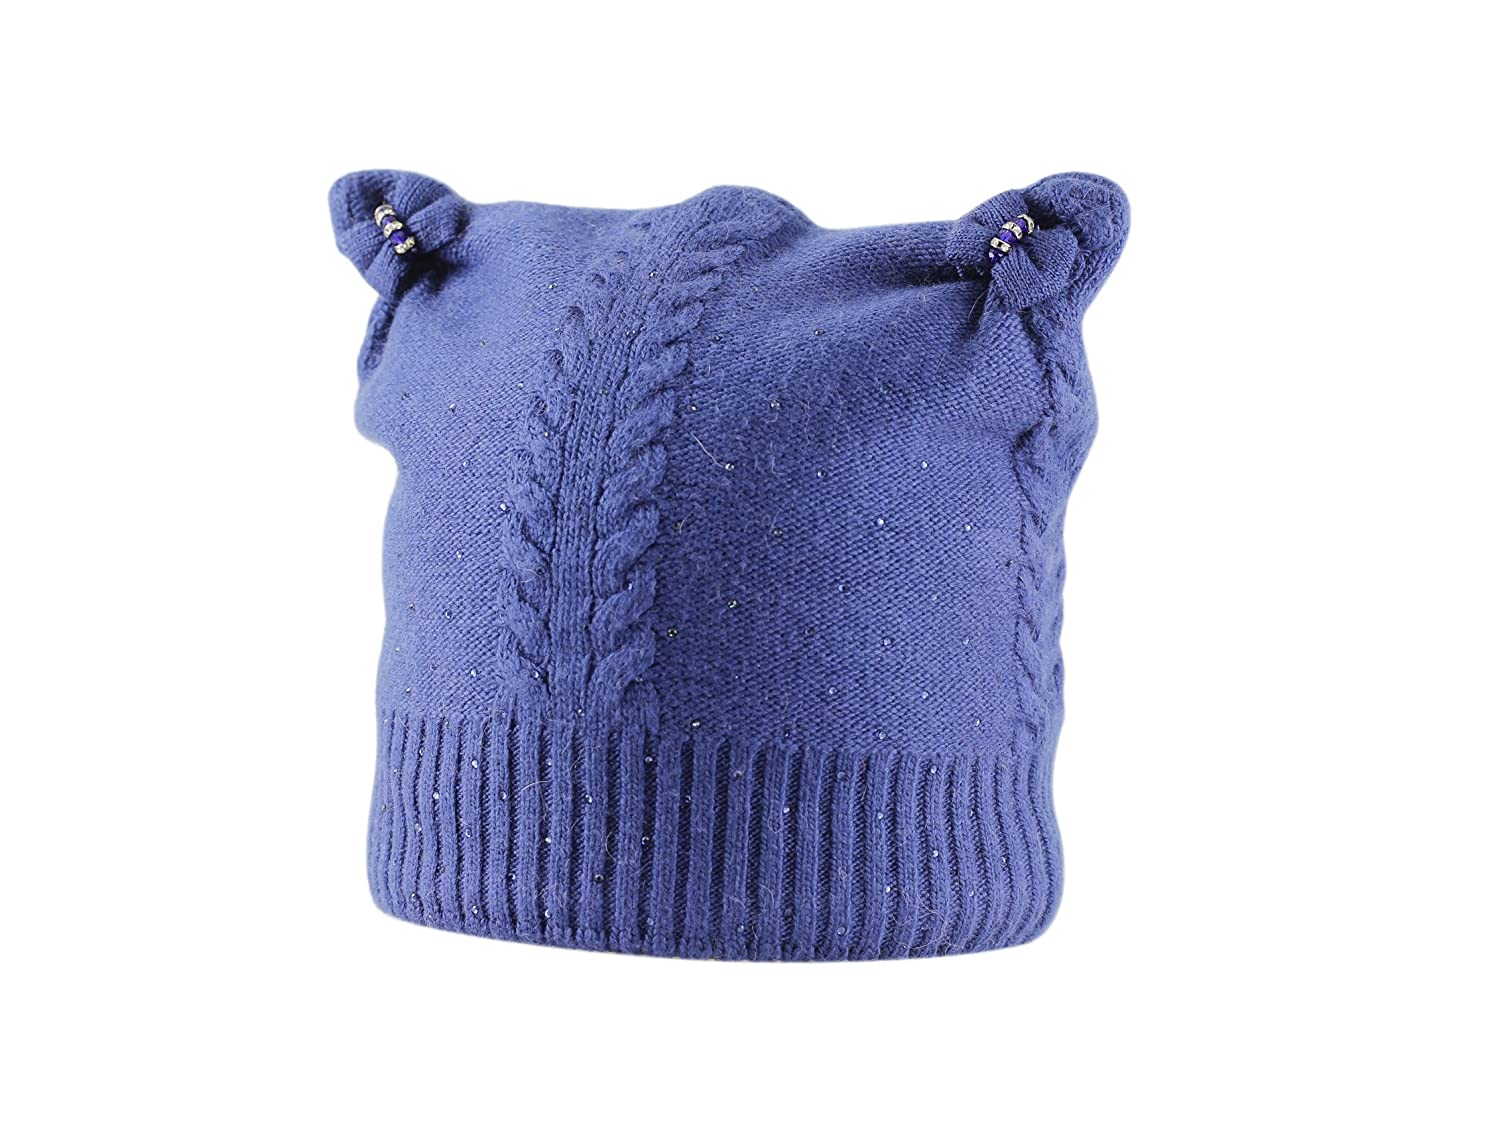 LA-EL COUTURE Kids Wool/&Angora with Rhinestones and Pigtails Warm Beanie 3-5 y.o.